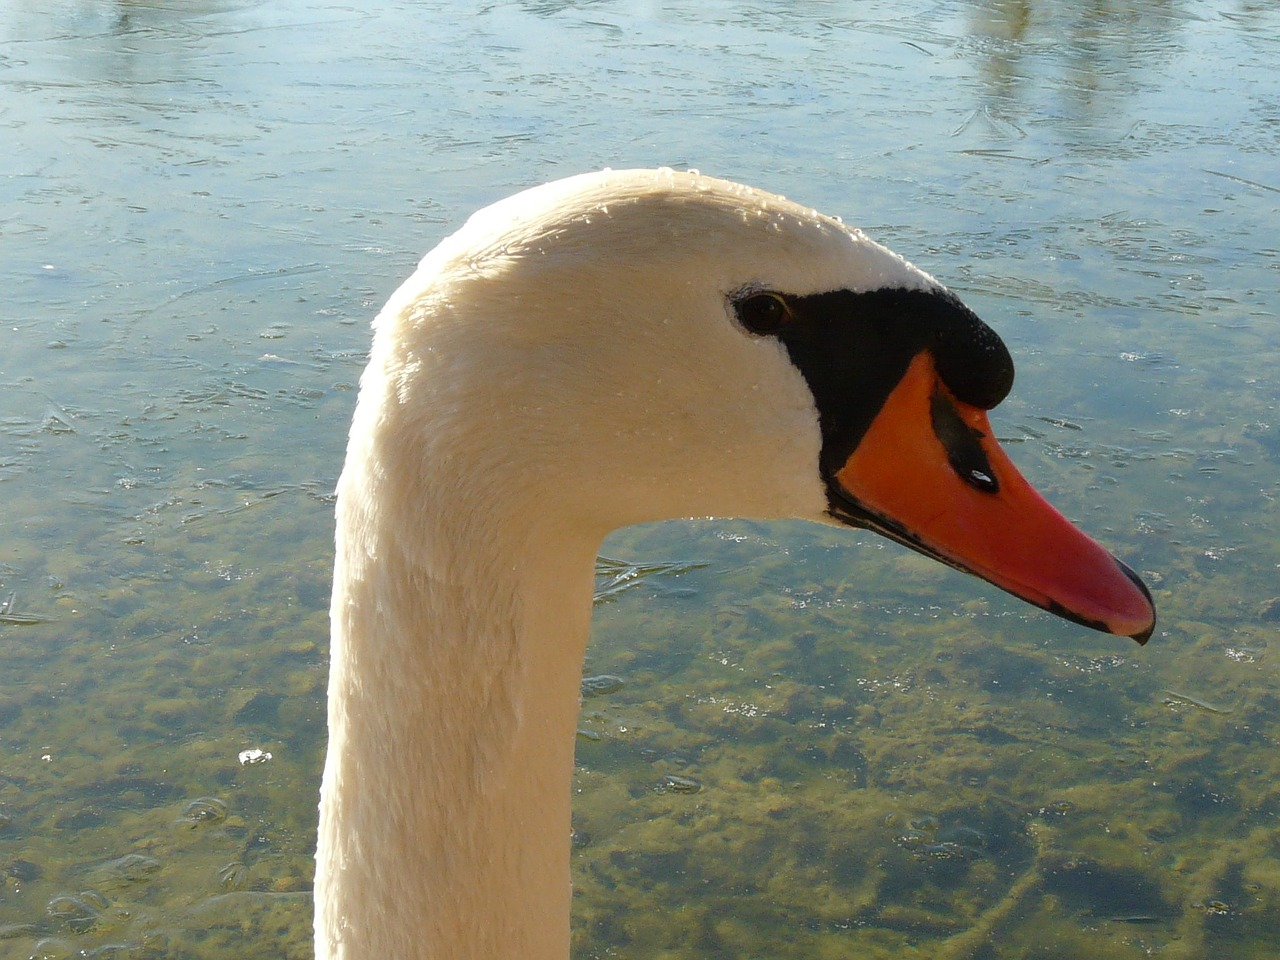 swan gooseneck bill free photo